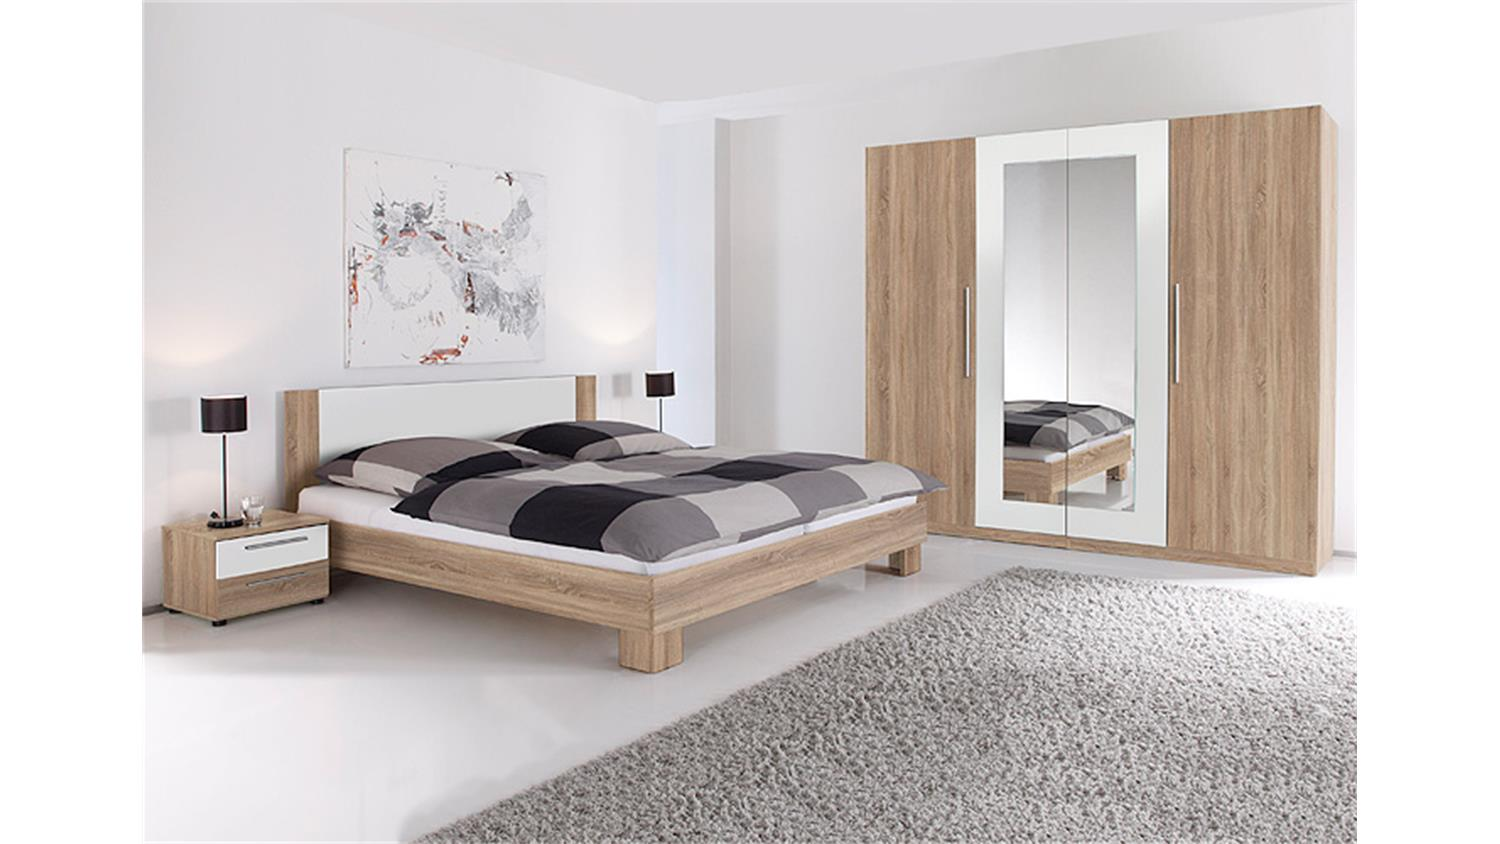 schlafzimmer set martina sonoma eiche s gerau und wei. Black Bedroom Furniture Sets. Home Design Ideas